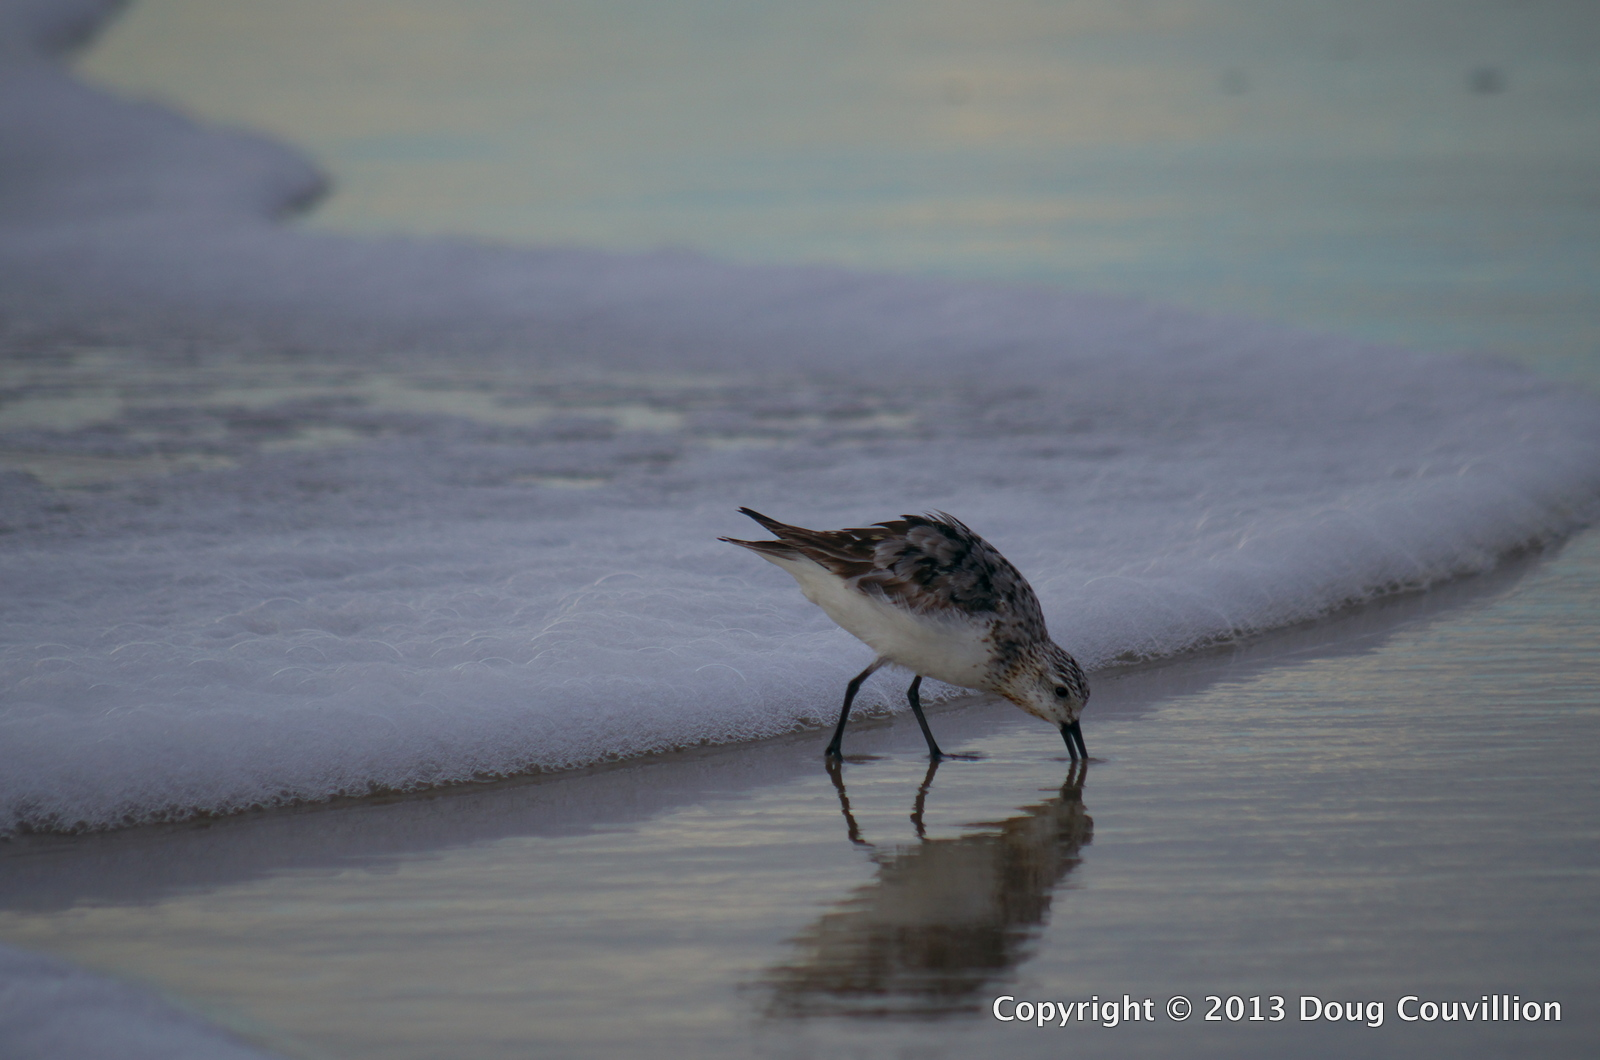 photograph of a sanderling digging in the surf